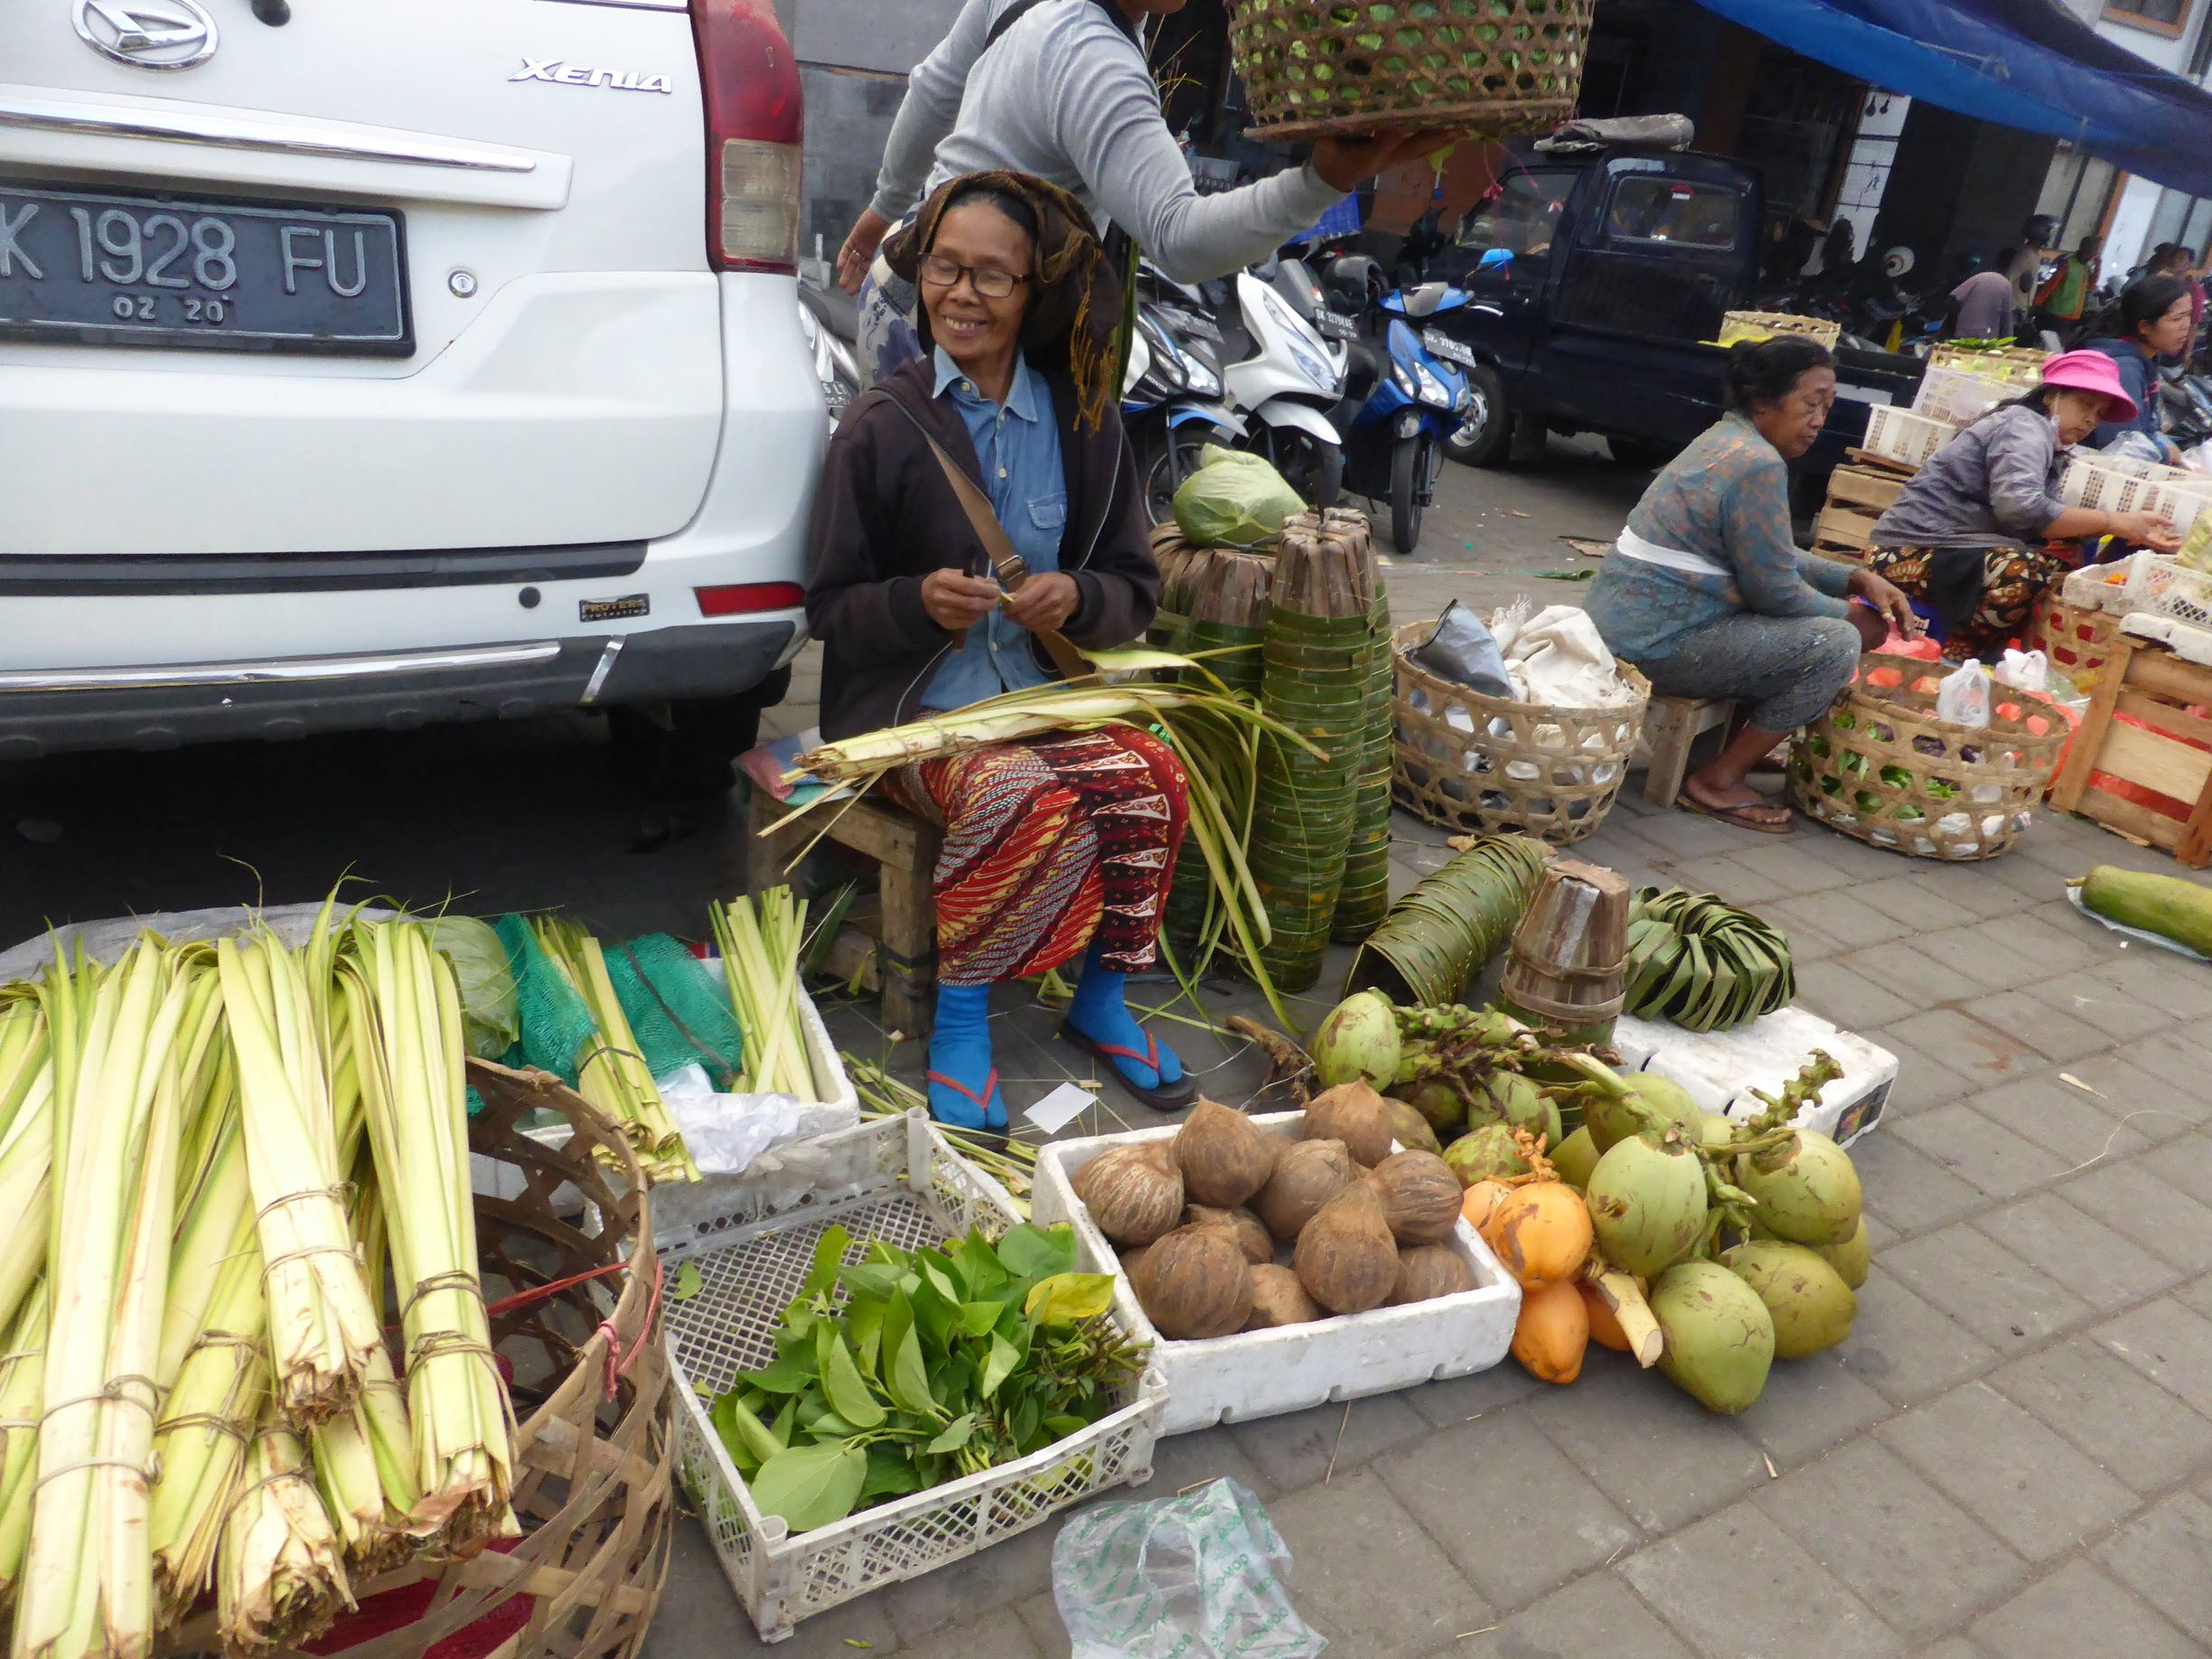 seller sitting behind produce